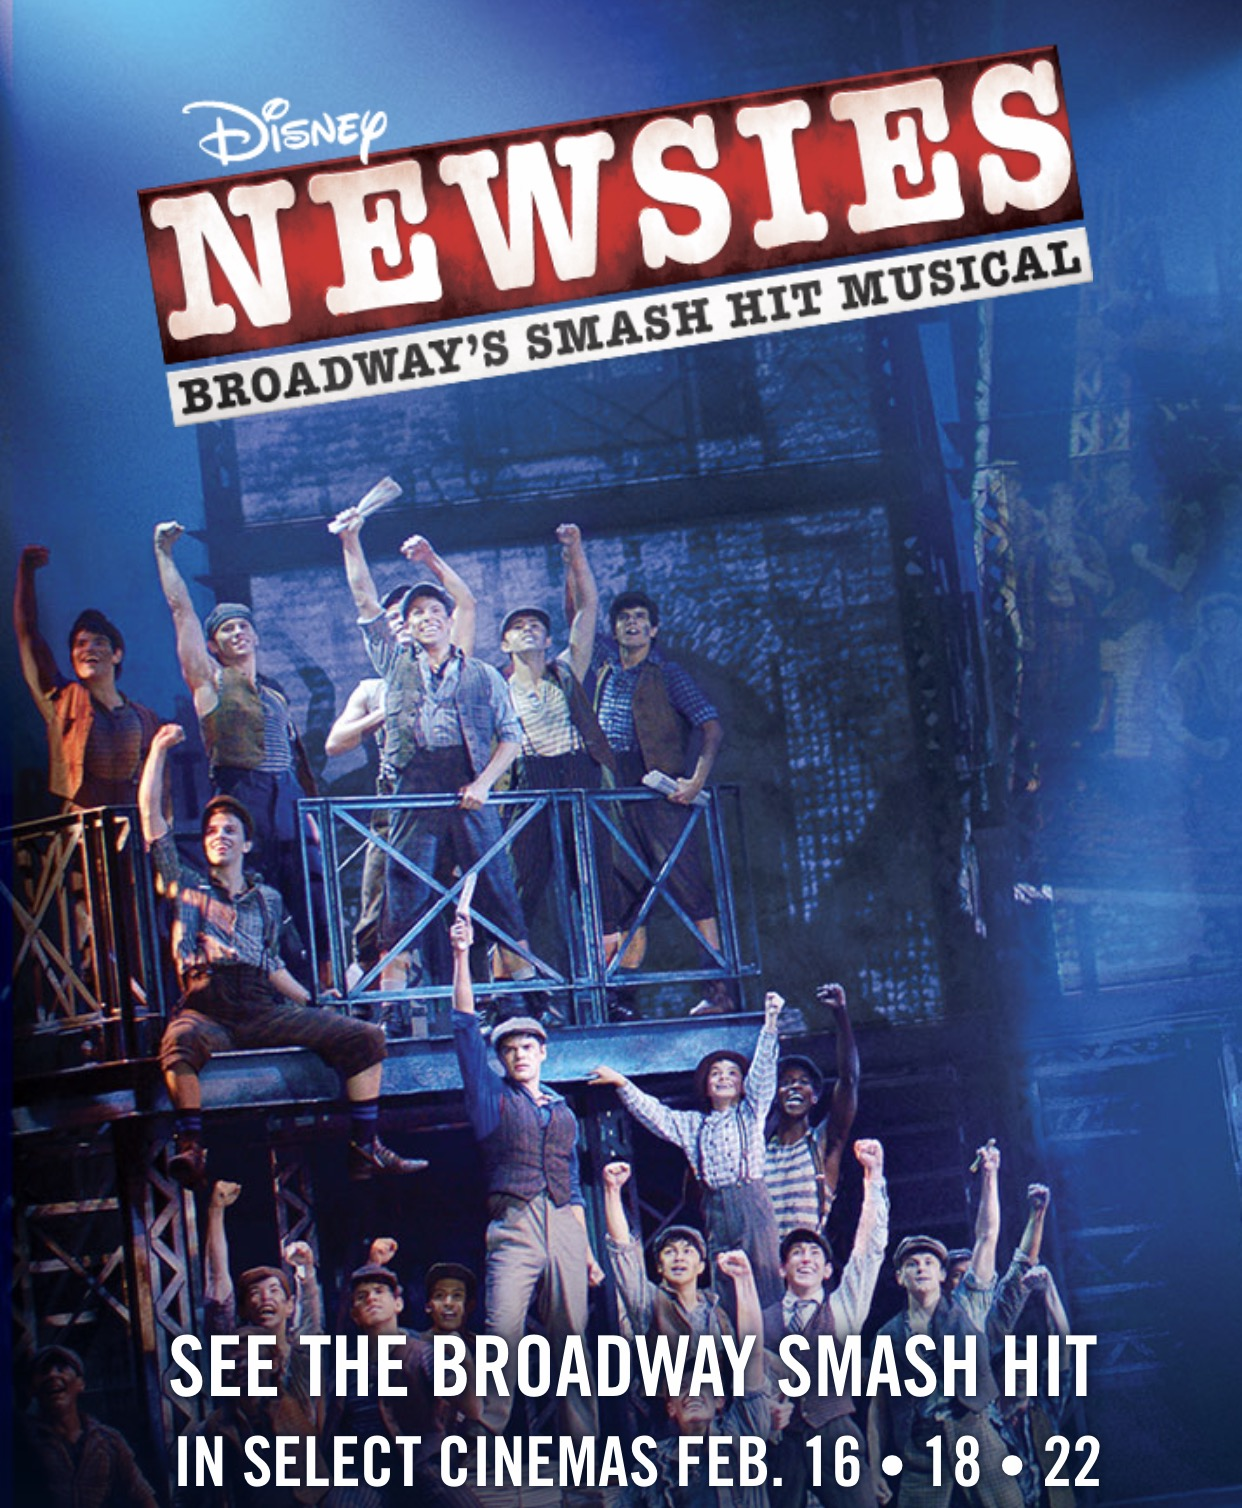 فیلم سینمایی Disney's Newsies the Broadway Musical به کارگردانی Brett Sullivan و Jeff Calhoun